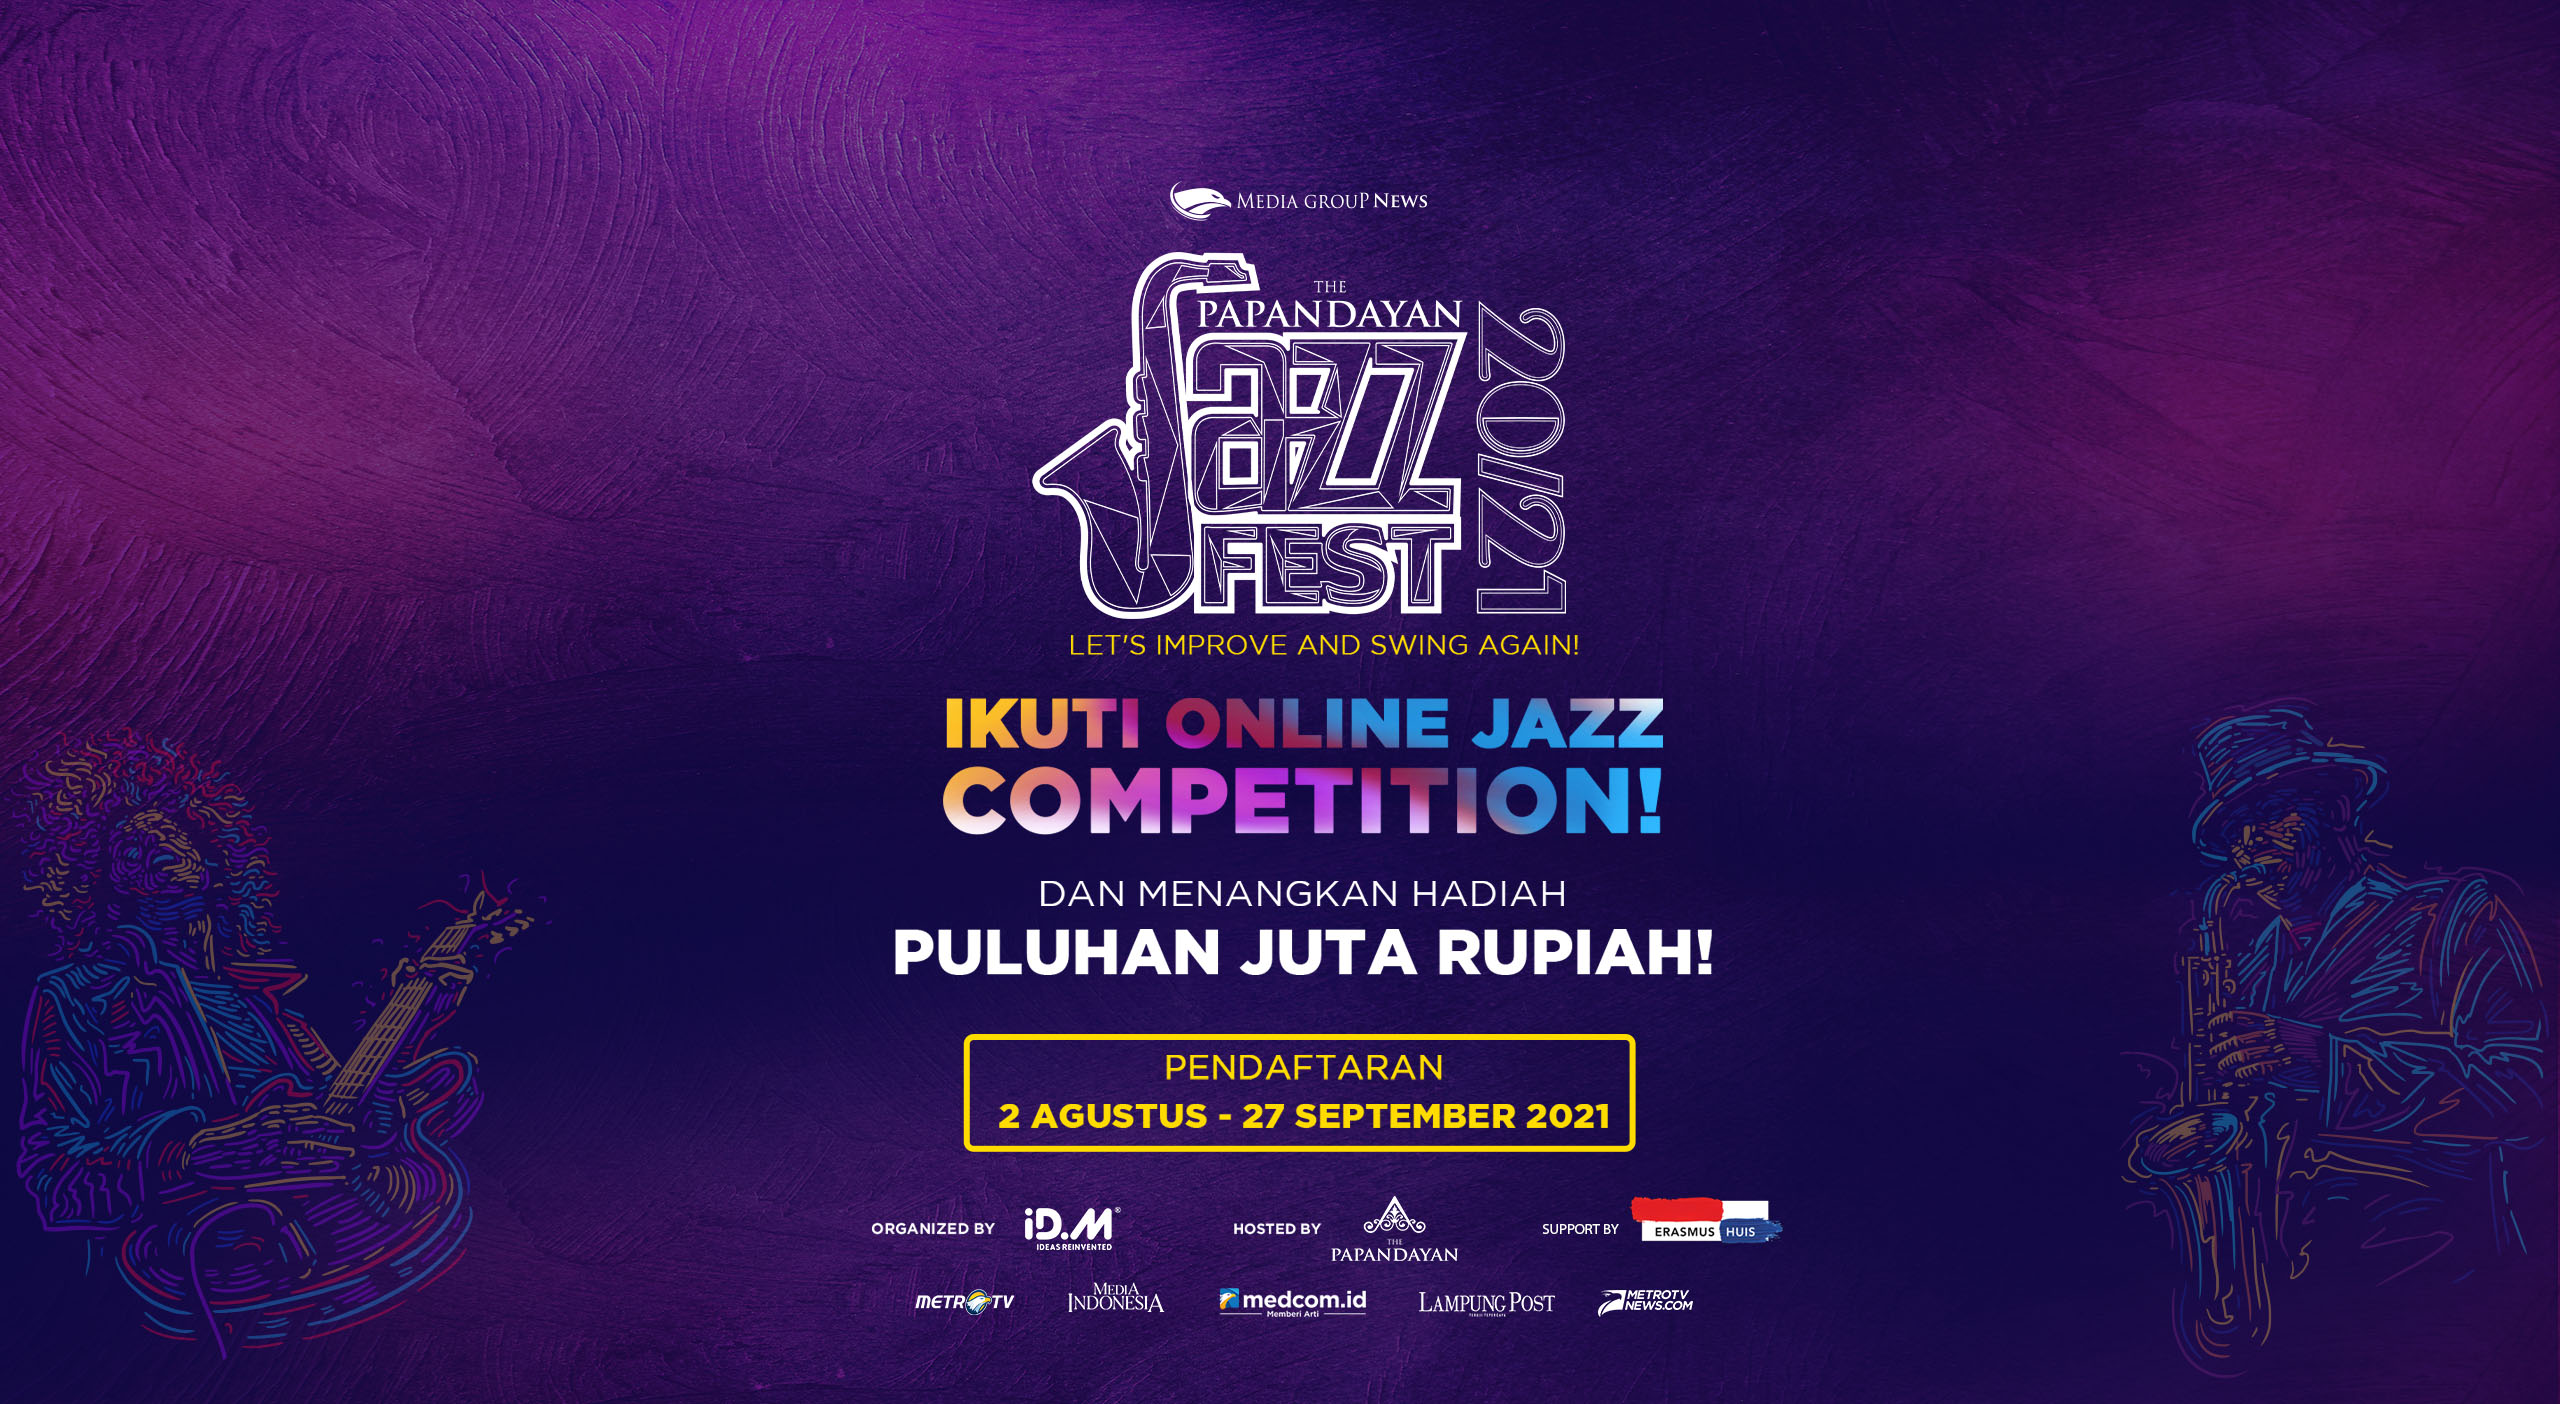 TPJF Online Jazz Competition